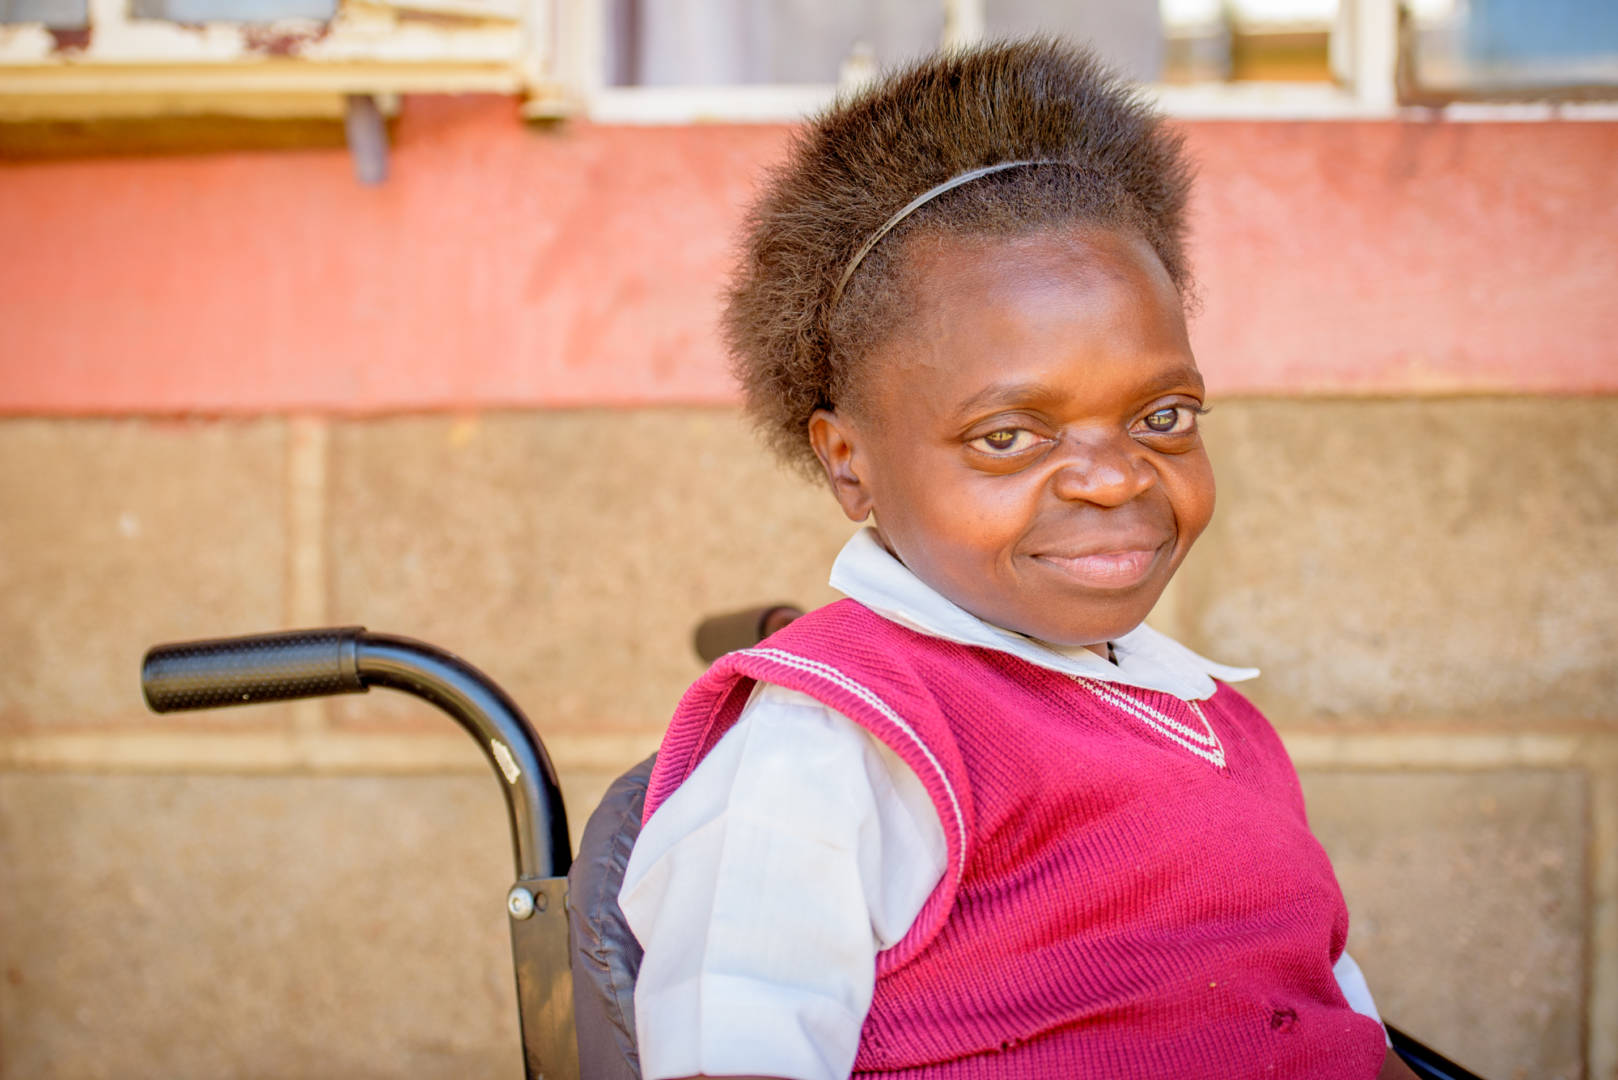 Sixteen-year-old Judith Ajwang says she has a brighter future thanks to the new wheelchair she received through ACCESS — a USAID-funded and World Vision-implemented project.